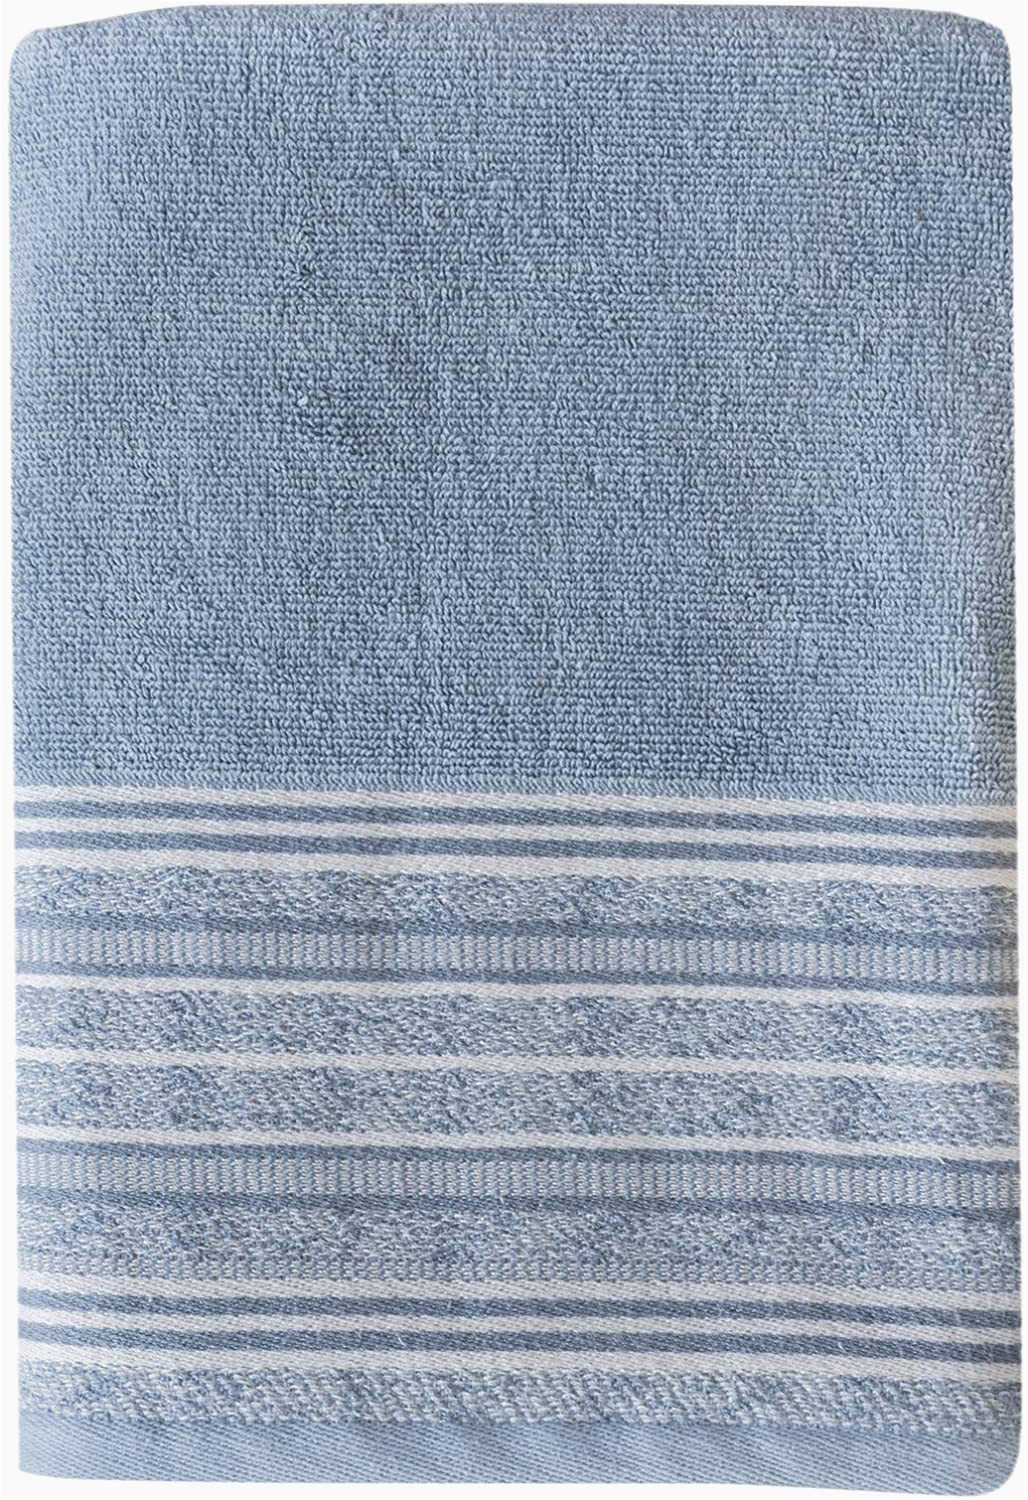 Croscill Nomad Bath Rug Croscill Nomad Bath towel Blue